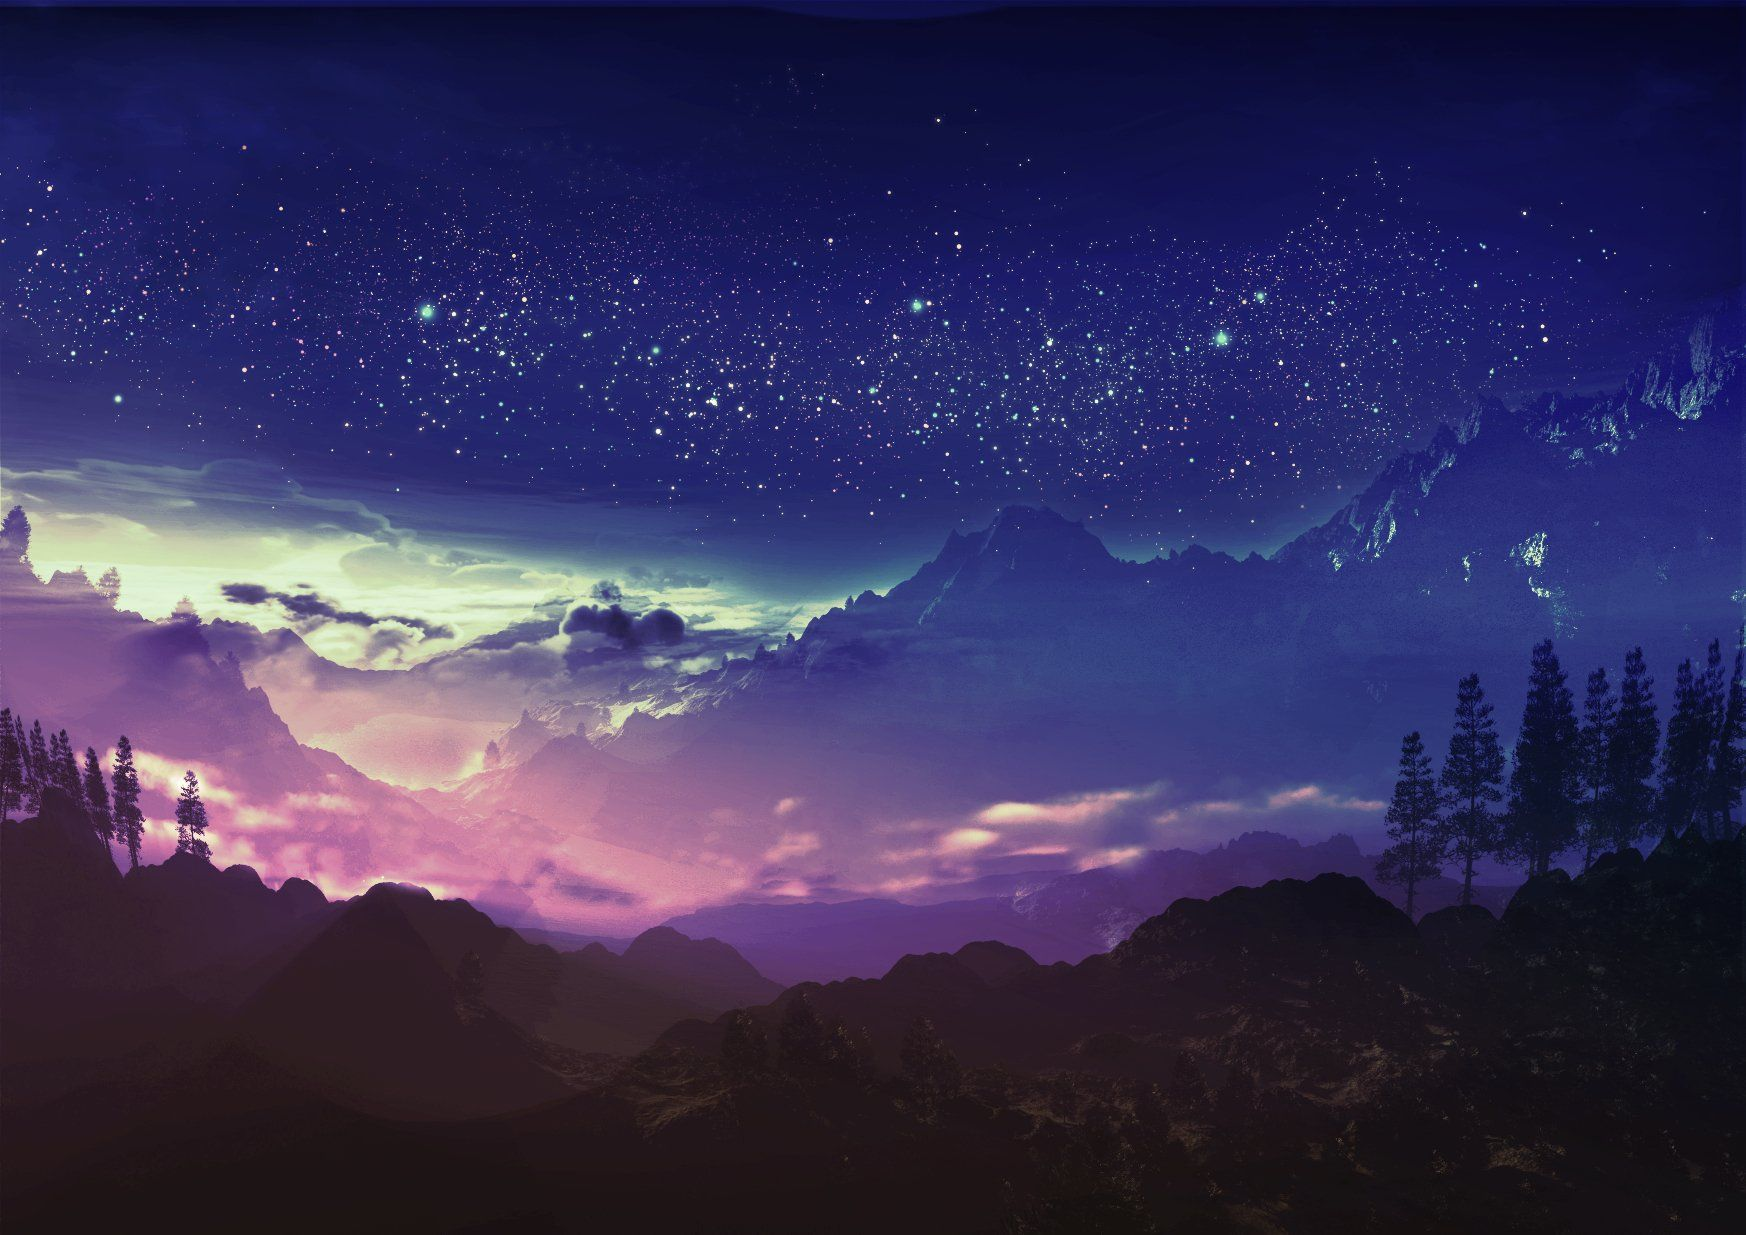 Anime Original Landscape Mountain Tree Cloud Star Sky